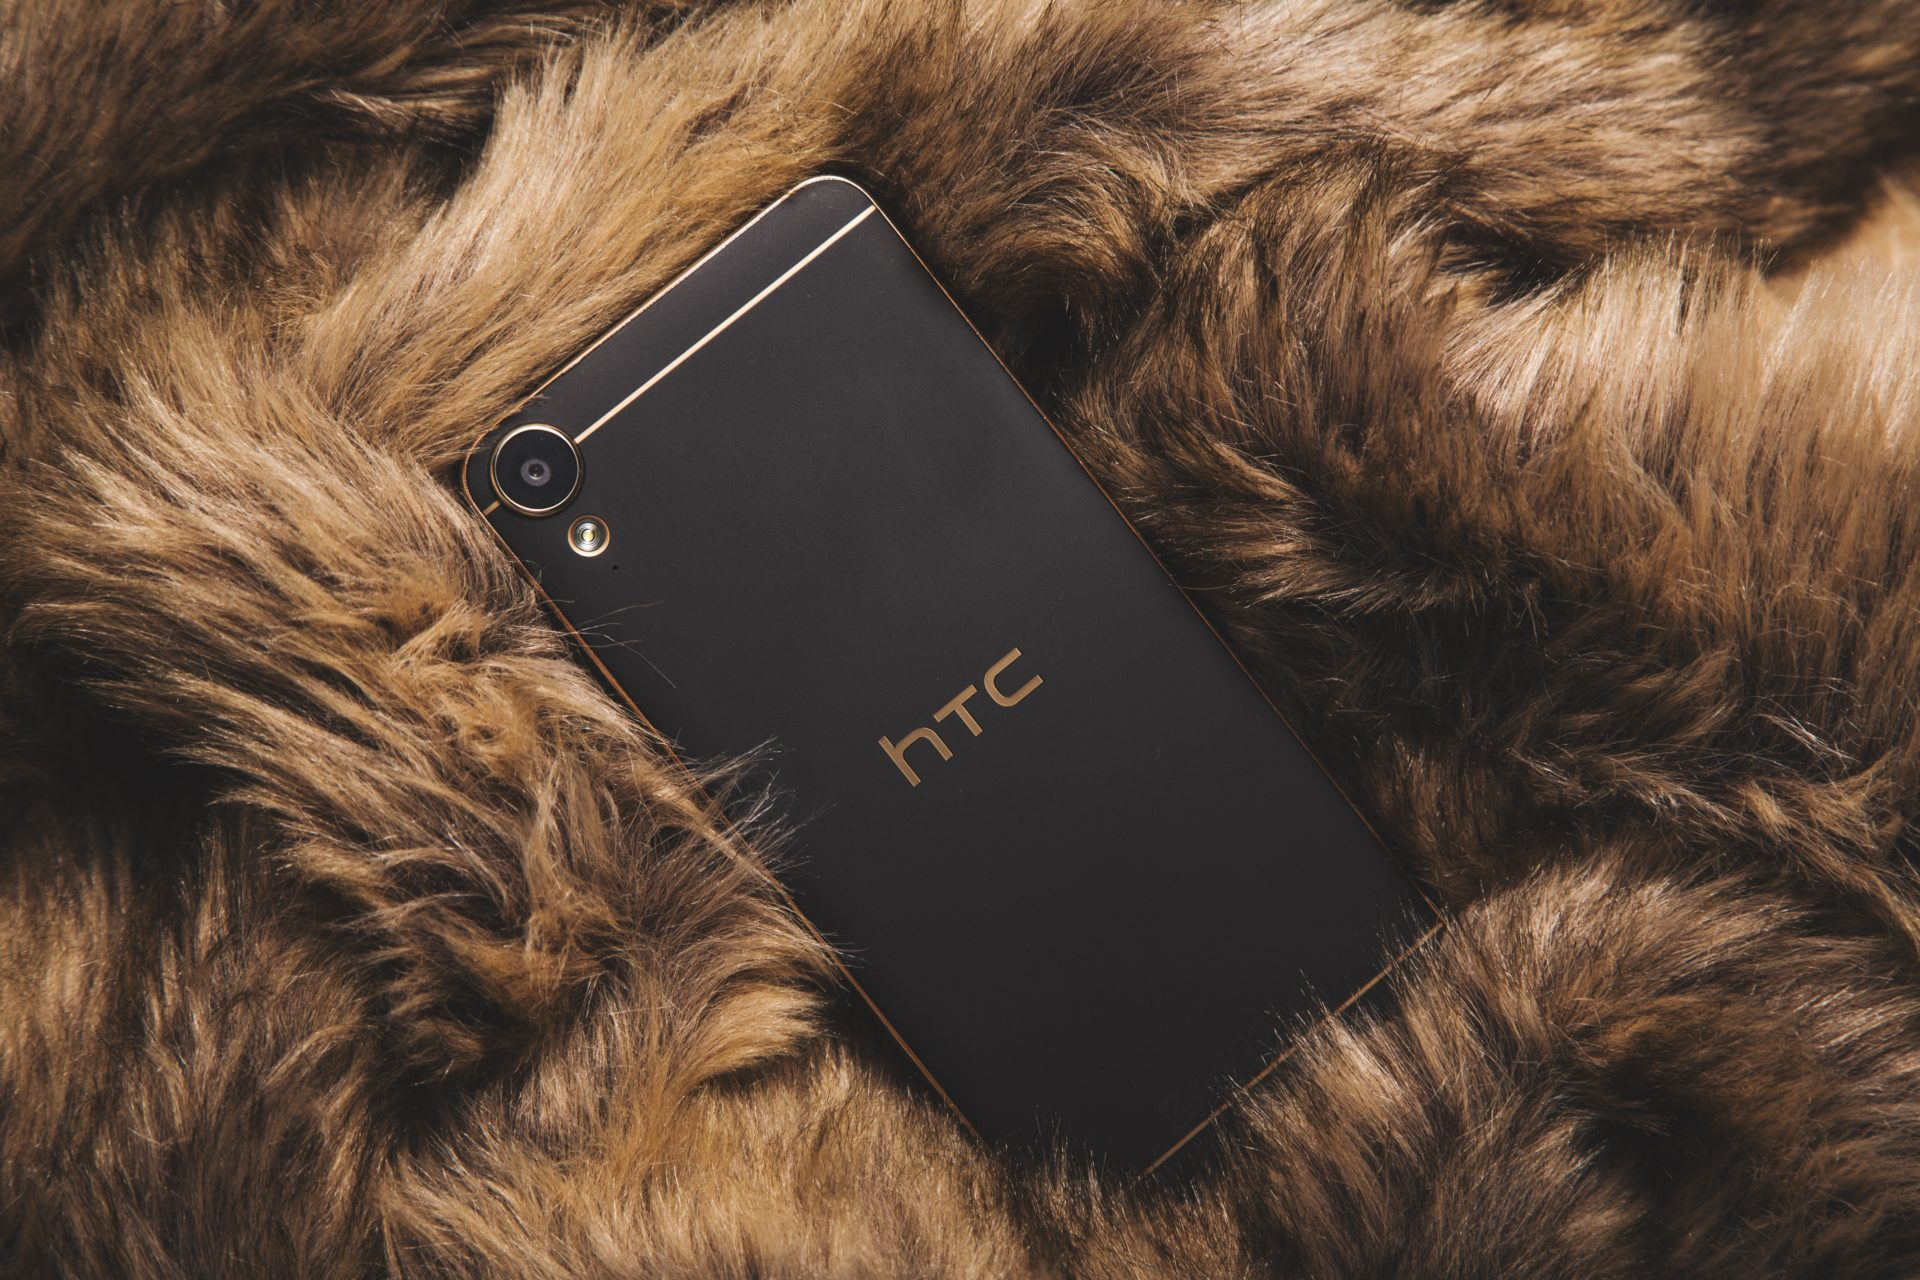 BTC Node On a Smartphone? – Easy, Says HTC, Speaking of Its New EXODUS Phone 13